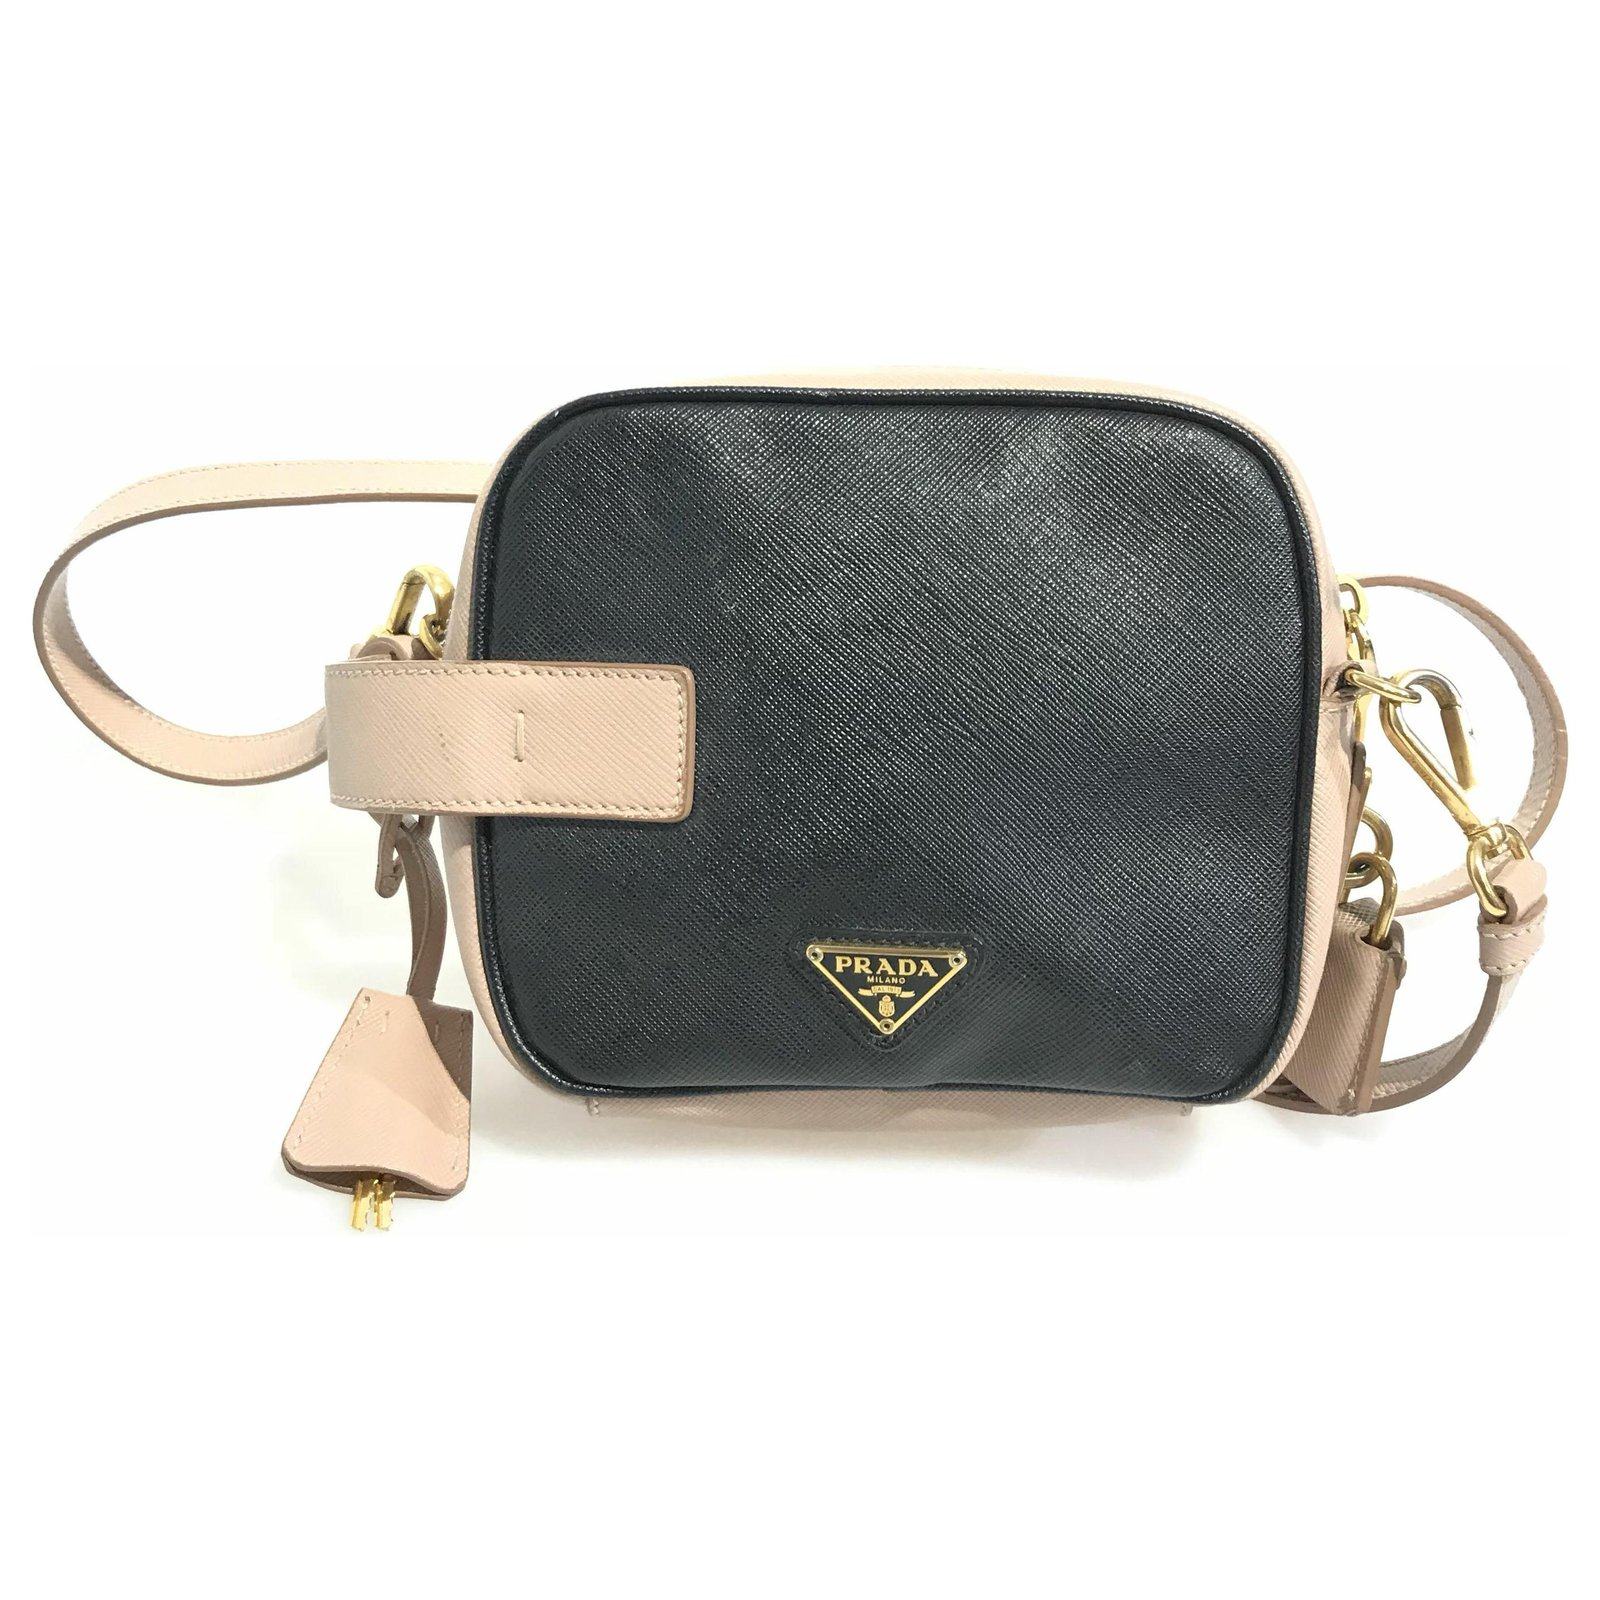 b12d4ead777b Prada Prada Black Bi-color Saffiano Mini Crossbody Handbags  Leather,Pony-style calfskin